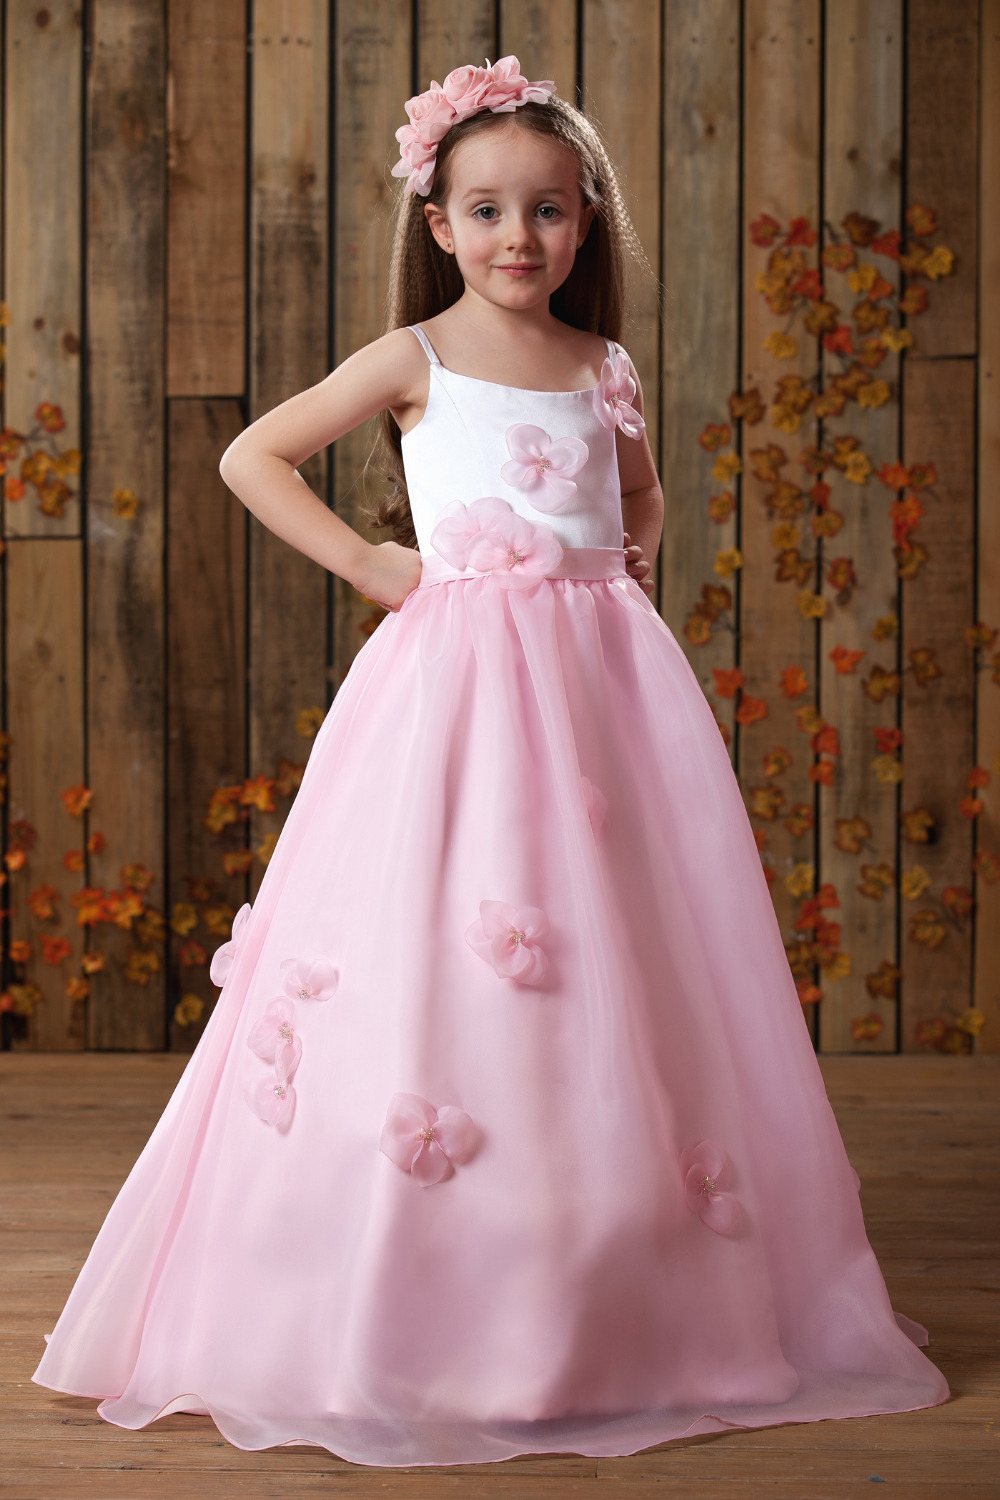 2015 beautiful princess dress royal loading female child wedding 2015 beautiful princess dress royal loading female child wedding female child bridesmaid dress in flower girl dresses from weddings events on ombrellifo Choice Image